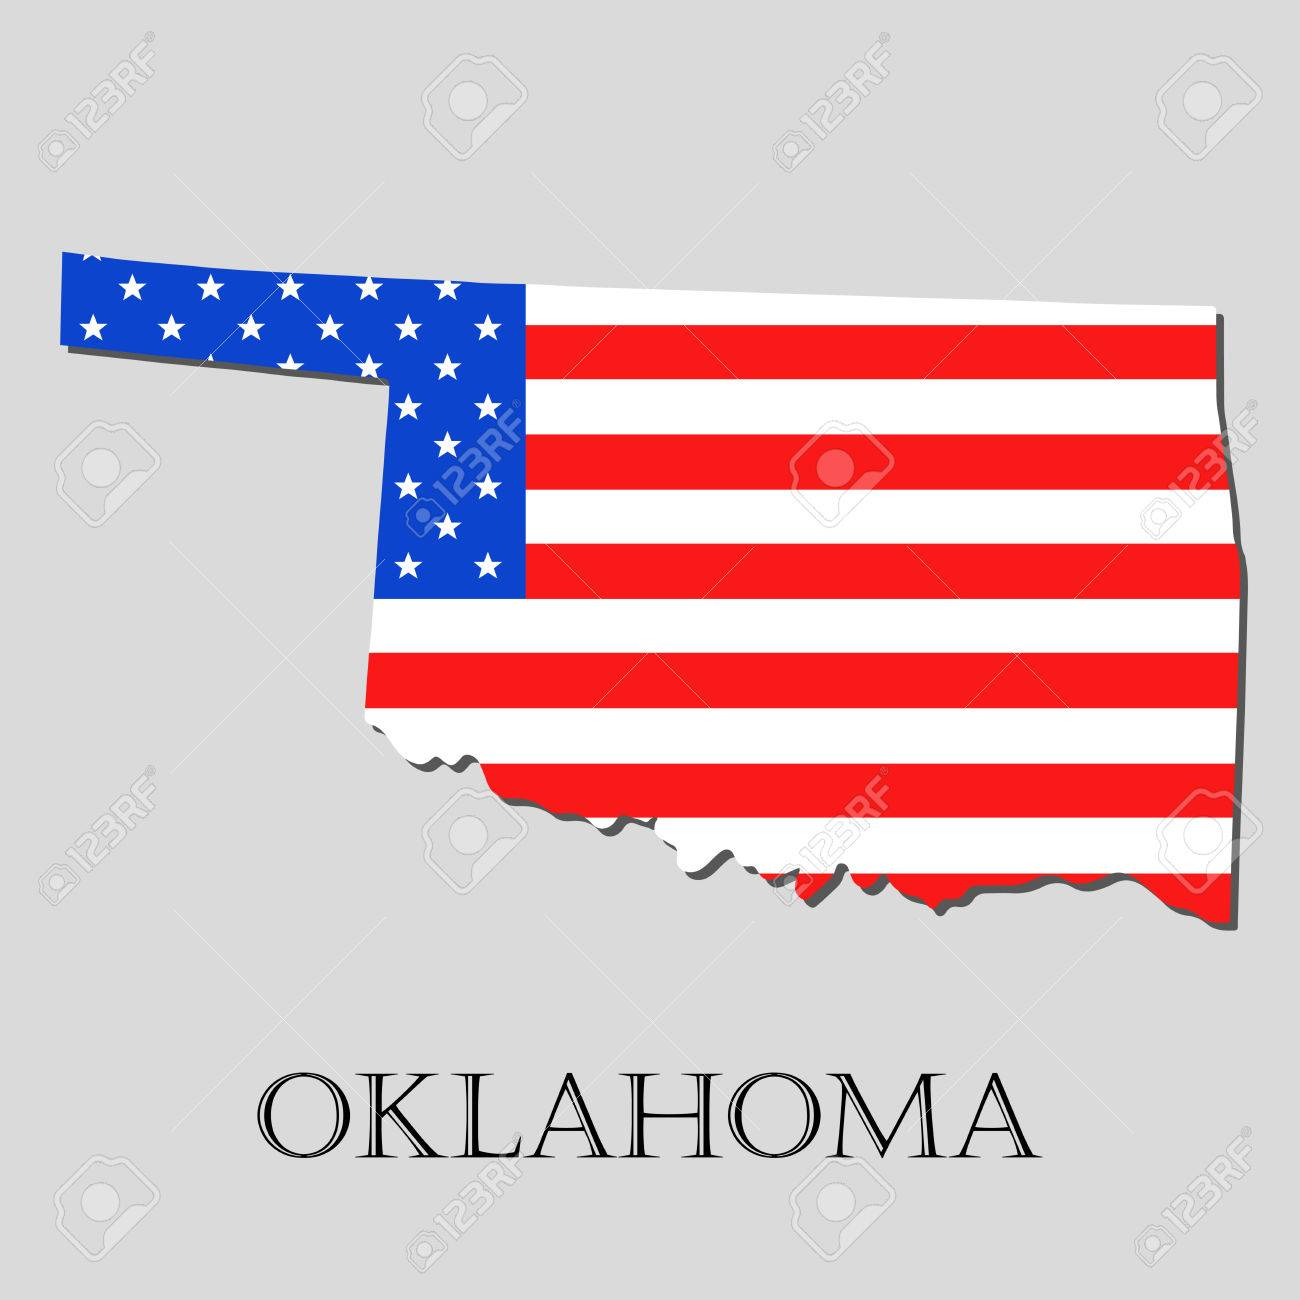 hight resolution of map of the state of oklahoma and american flag illustration america flag map vector